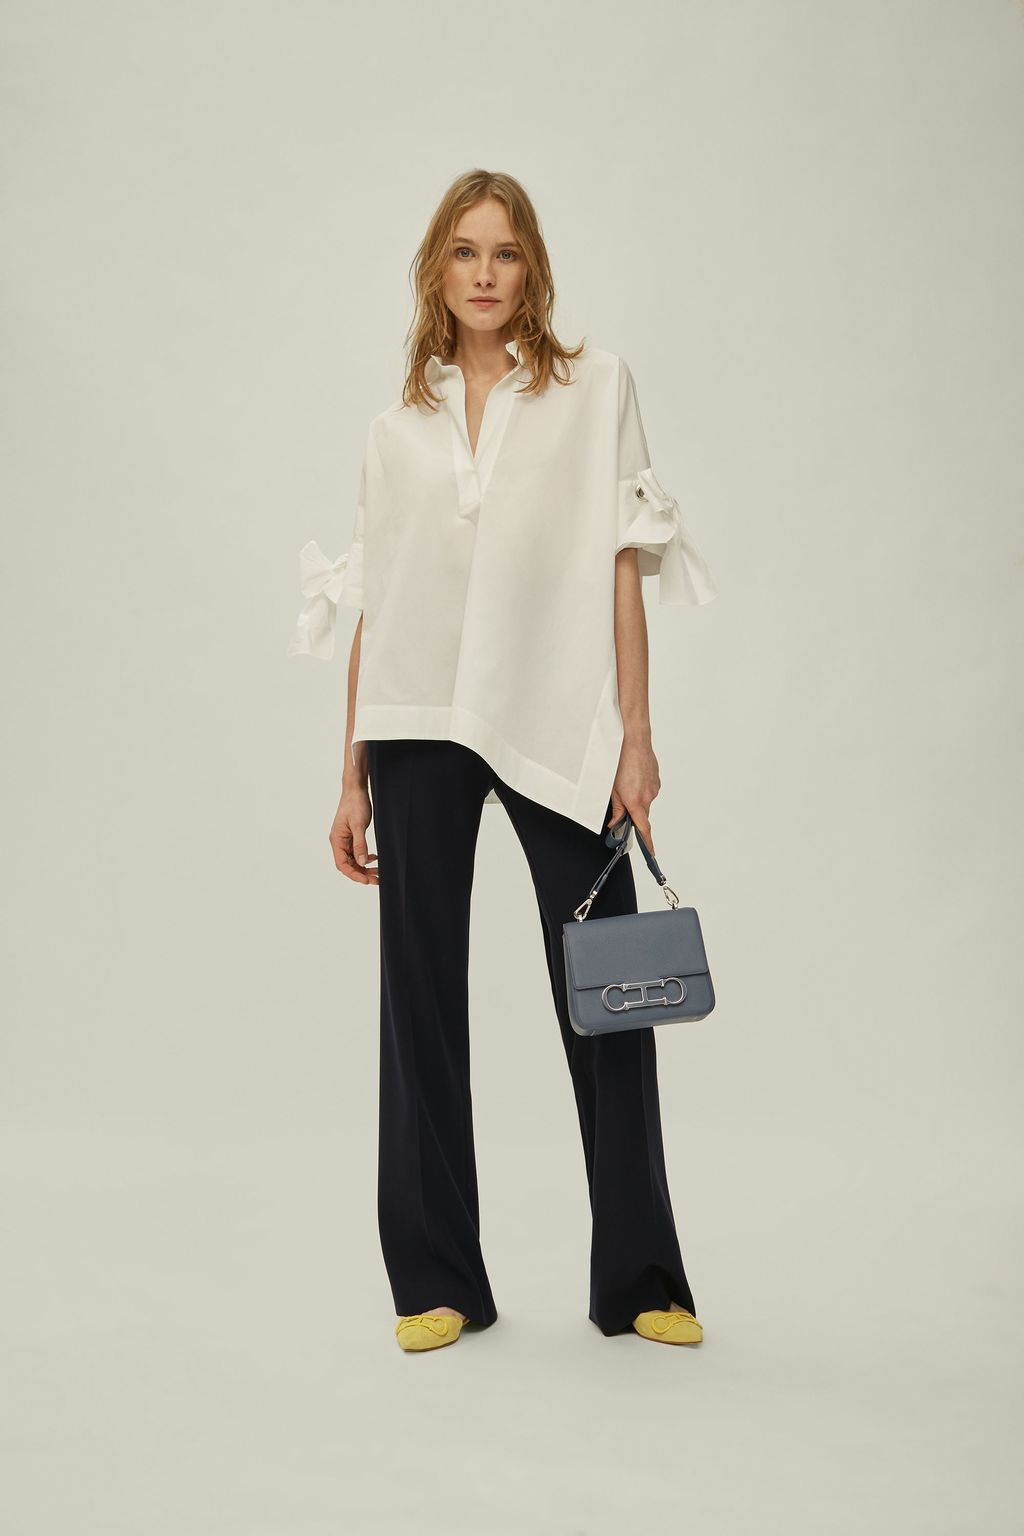 Asymmetric White Shirt